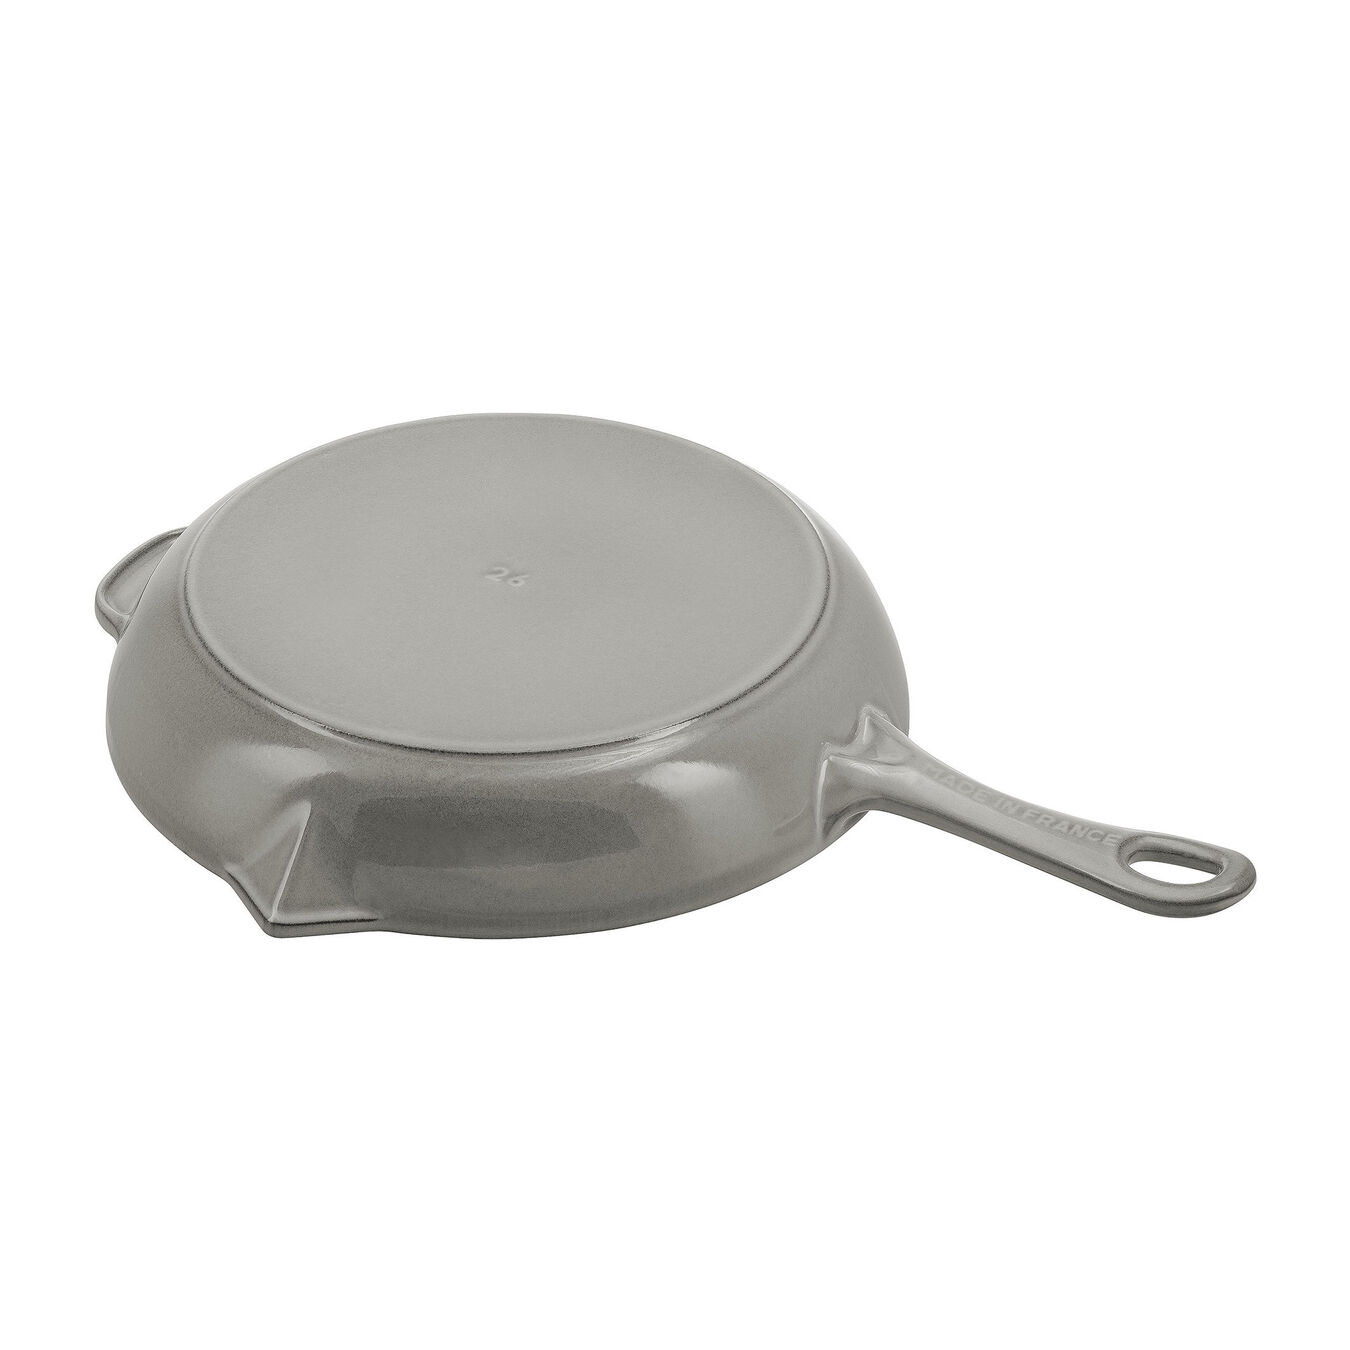 10-inch, Frying pan with pouring spout, graphite grey,,large 3